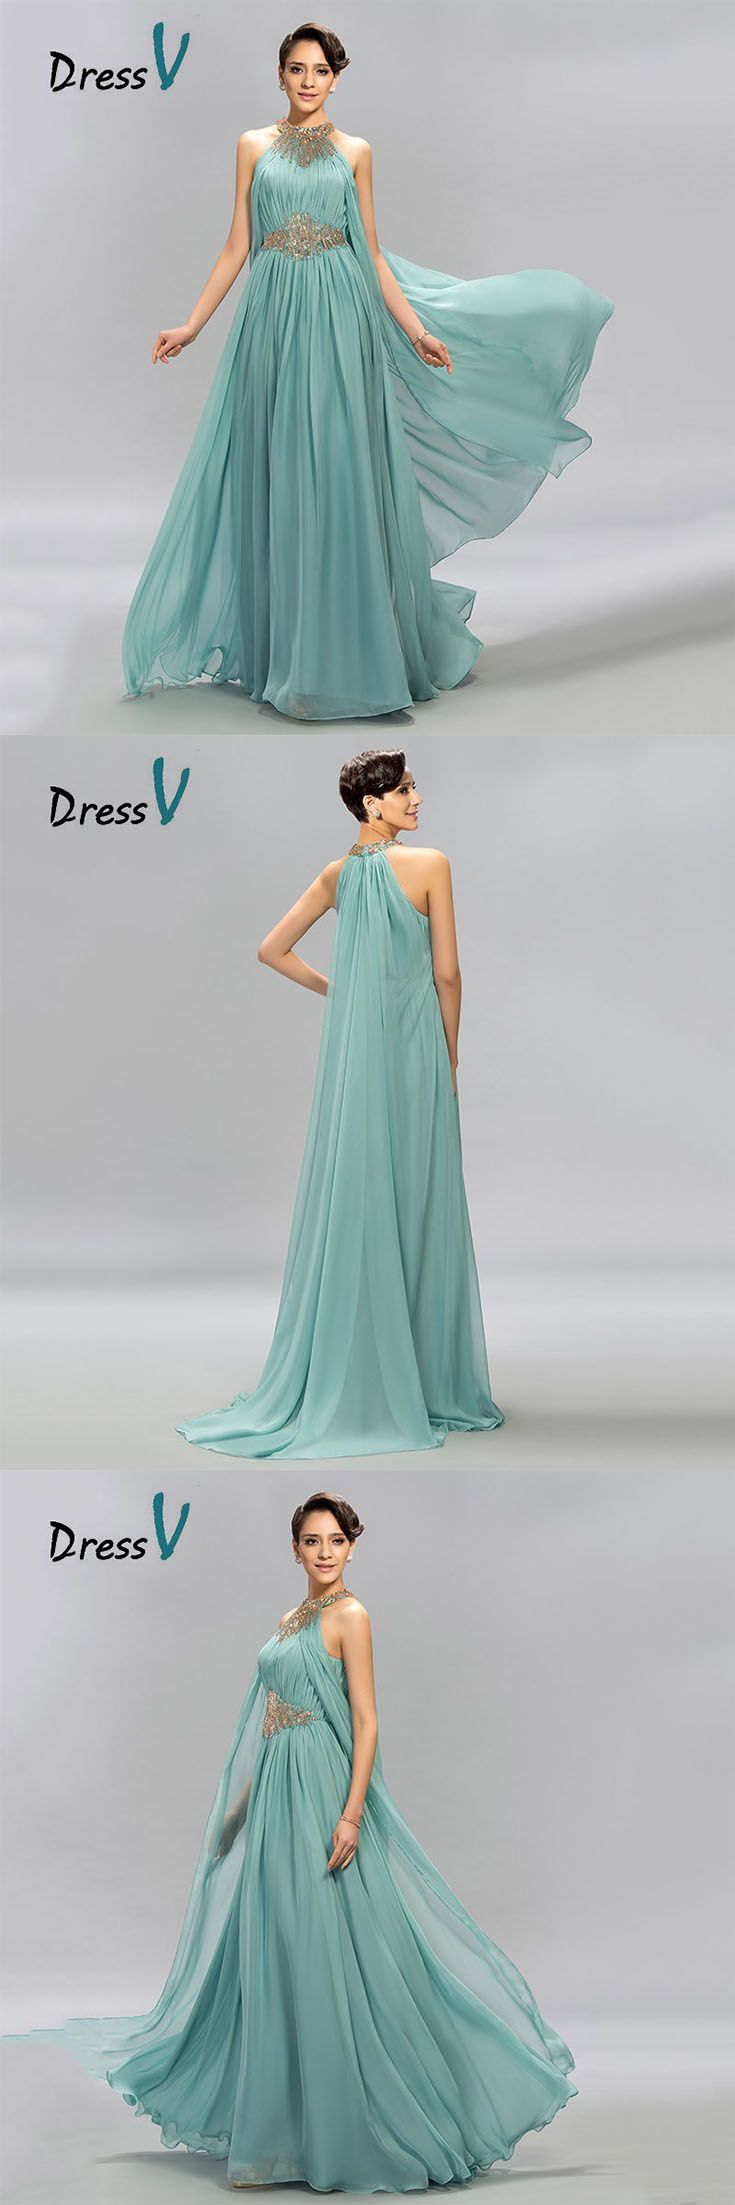 Feel like the aqua goddess herself. Olympus inspired teal prom dress is designed by DressV and brokered to you exclusively by Canagrill Trading Inc. Visit my portal amazing pricing, pin this!